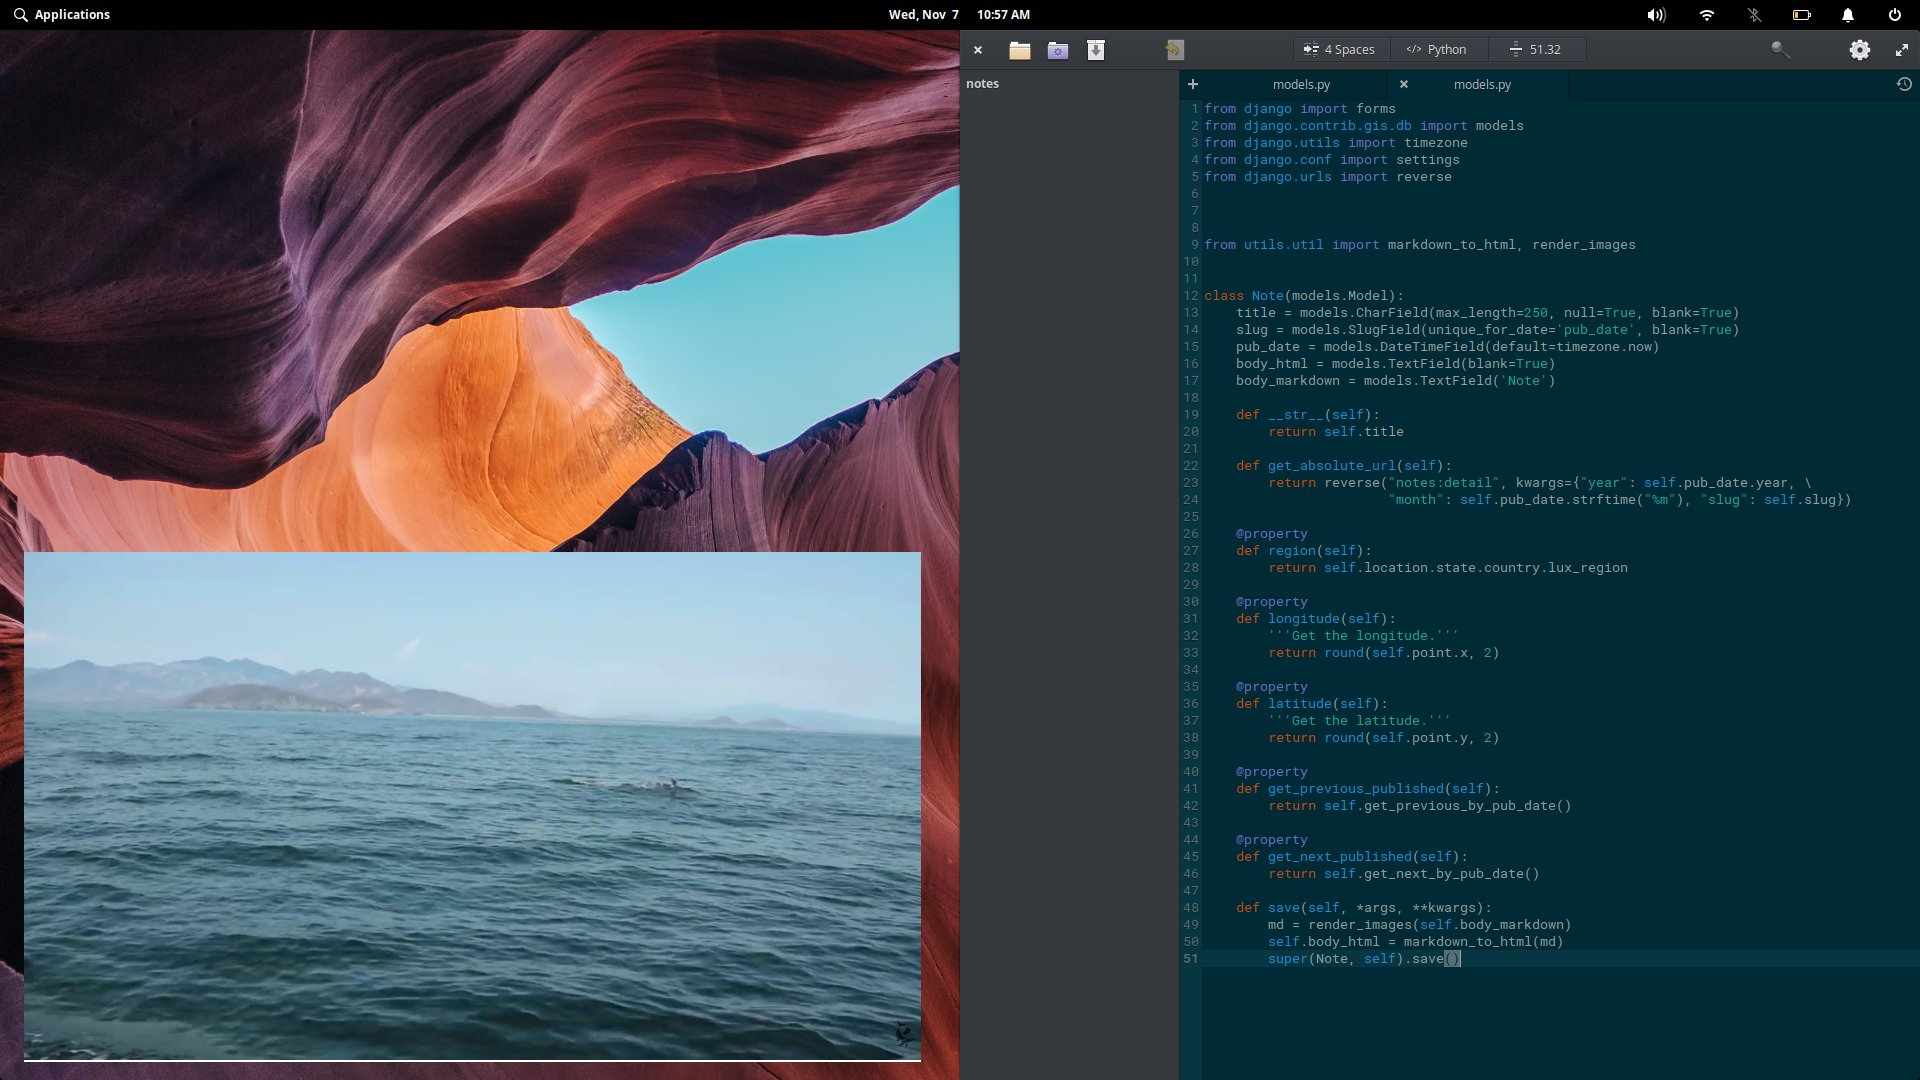 The new picture-in-picture in elementary OS. When it works, it's awesome.